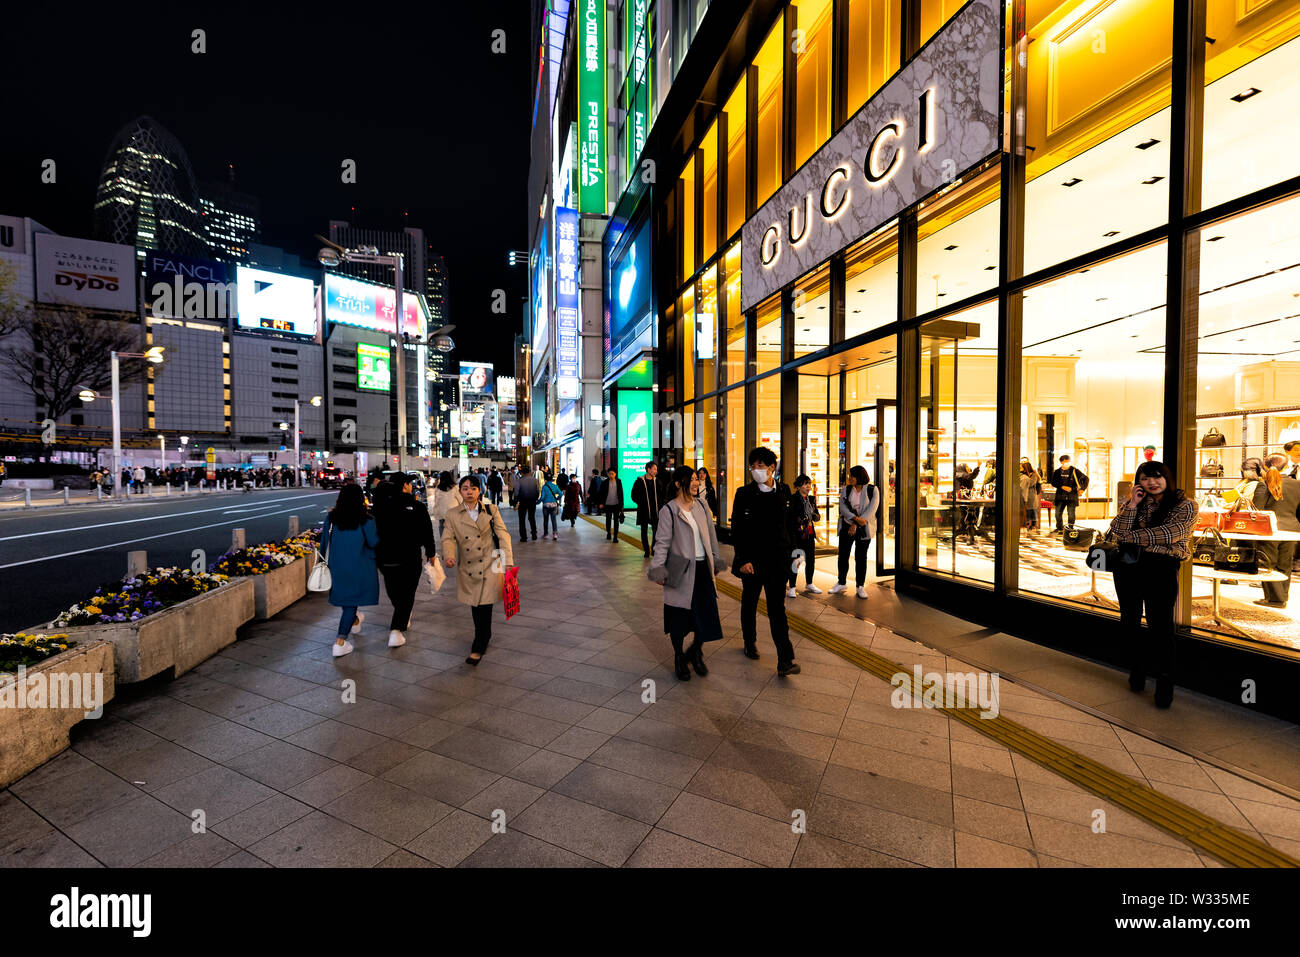 Shinjuku, Japan - April 4, 2019: Street outside view on entrance to Gucci luxury italian store shop at M Square by sidewalk with people walking at nig - Stock Image